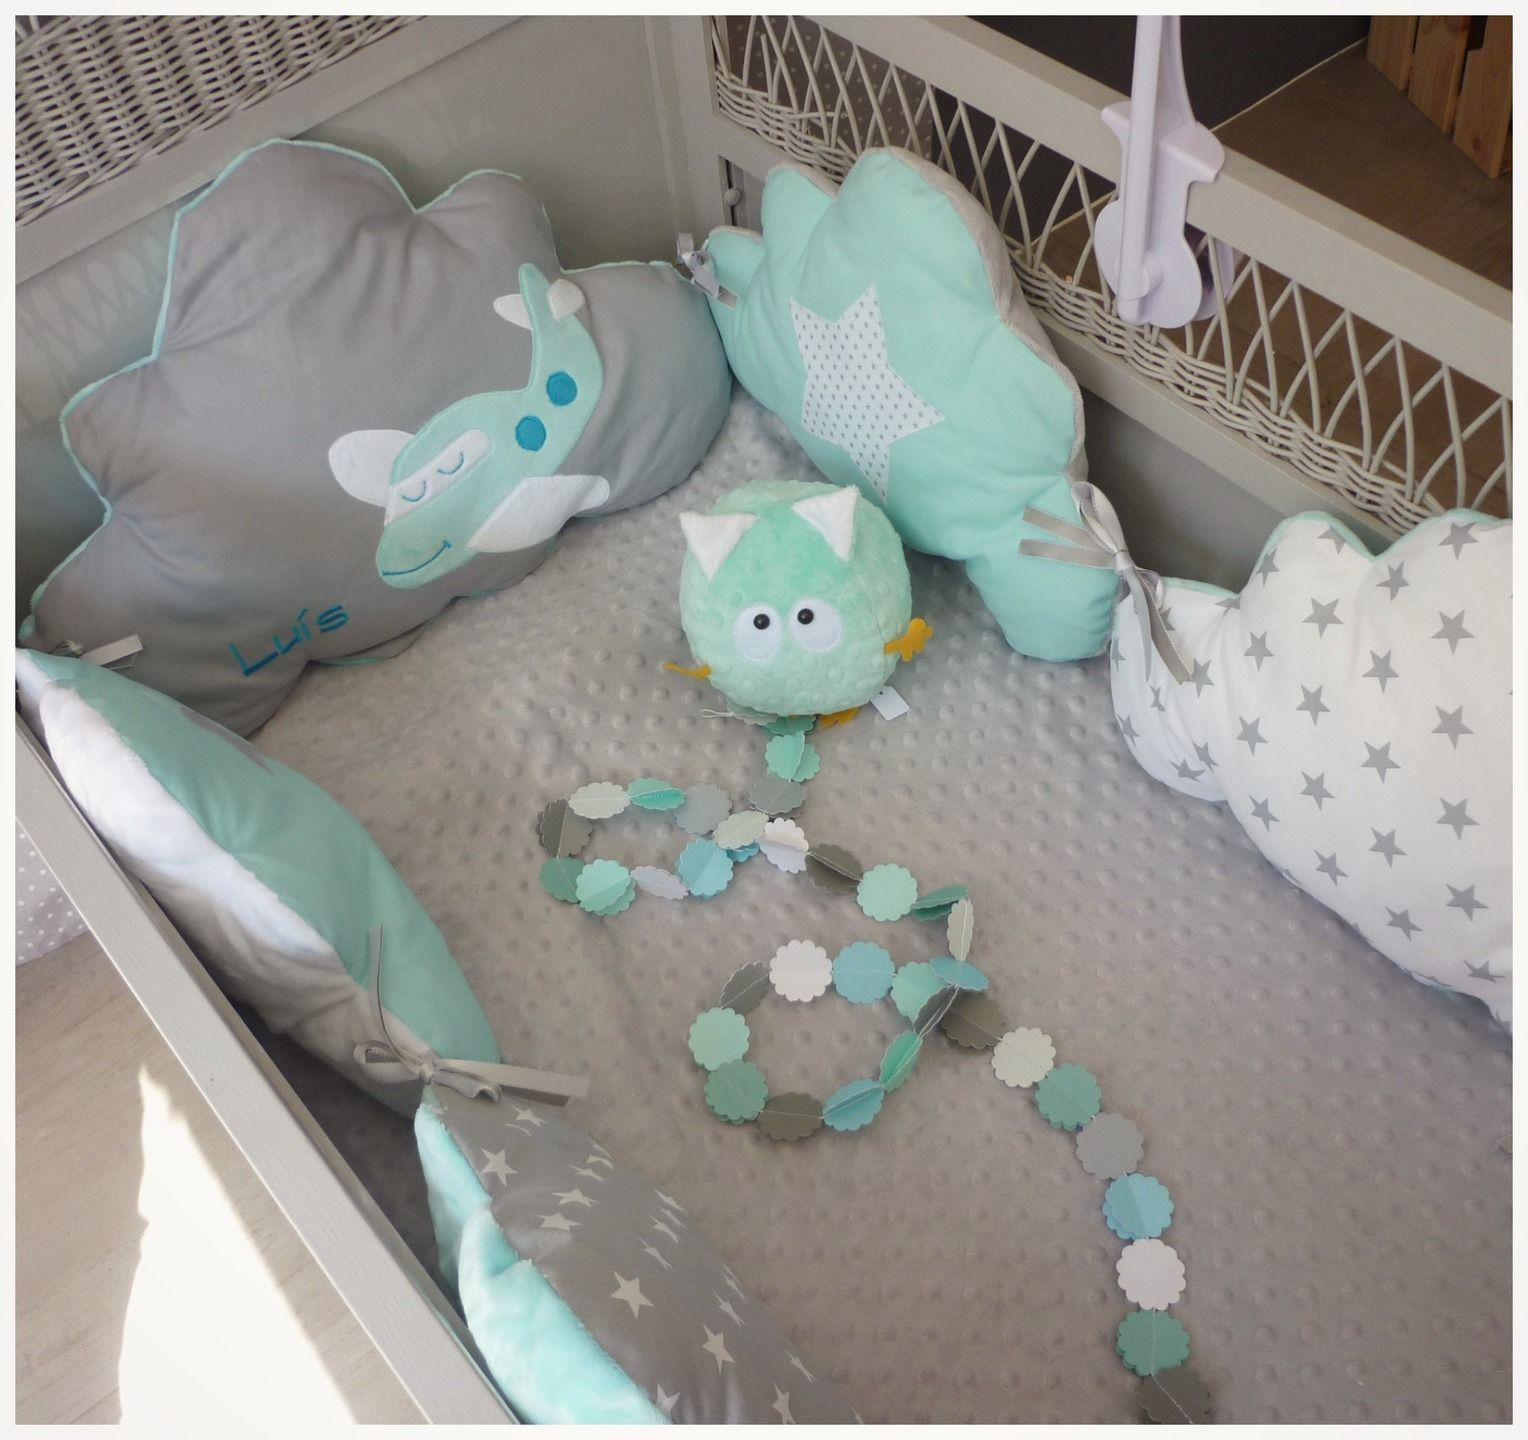 tour de lit b b nuage motif avion bleu aqua et gris clair linge de lit enfants par les petits. Black Bedroom Furniture Sets. Home Design Ideas